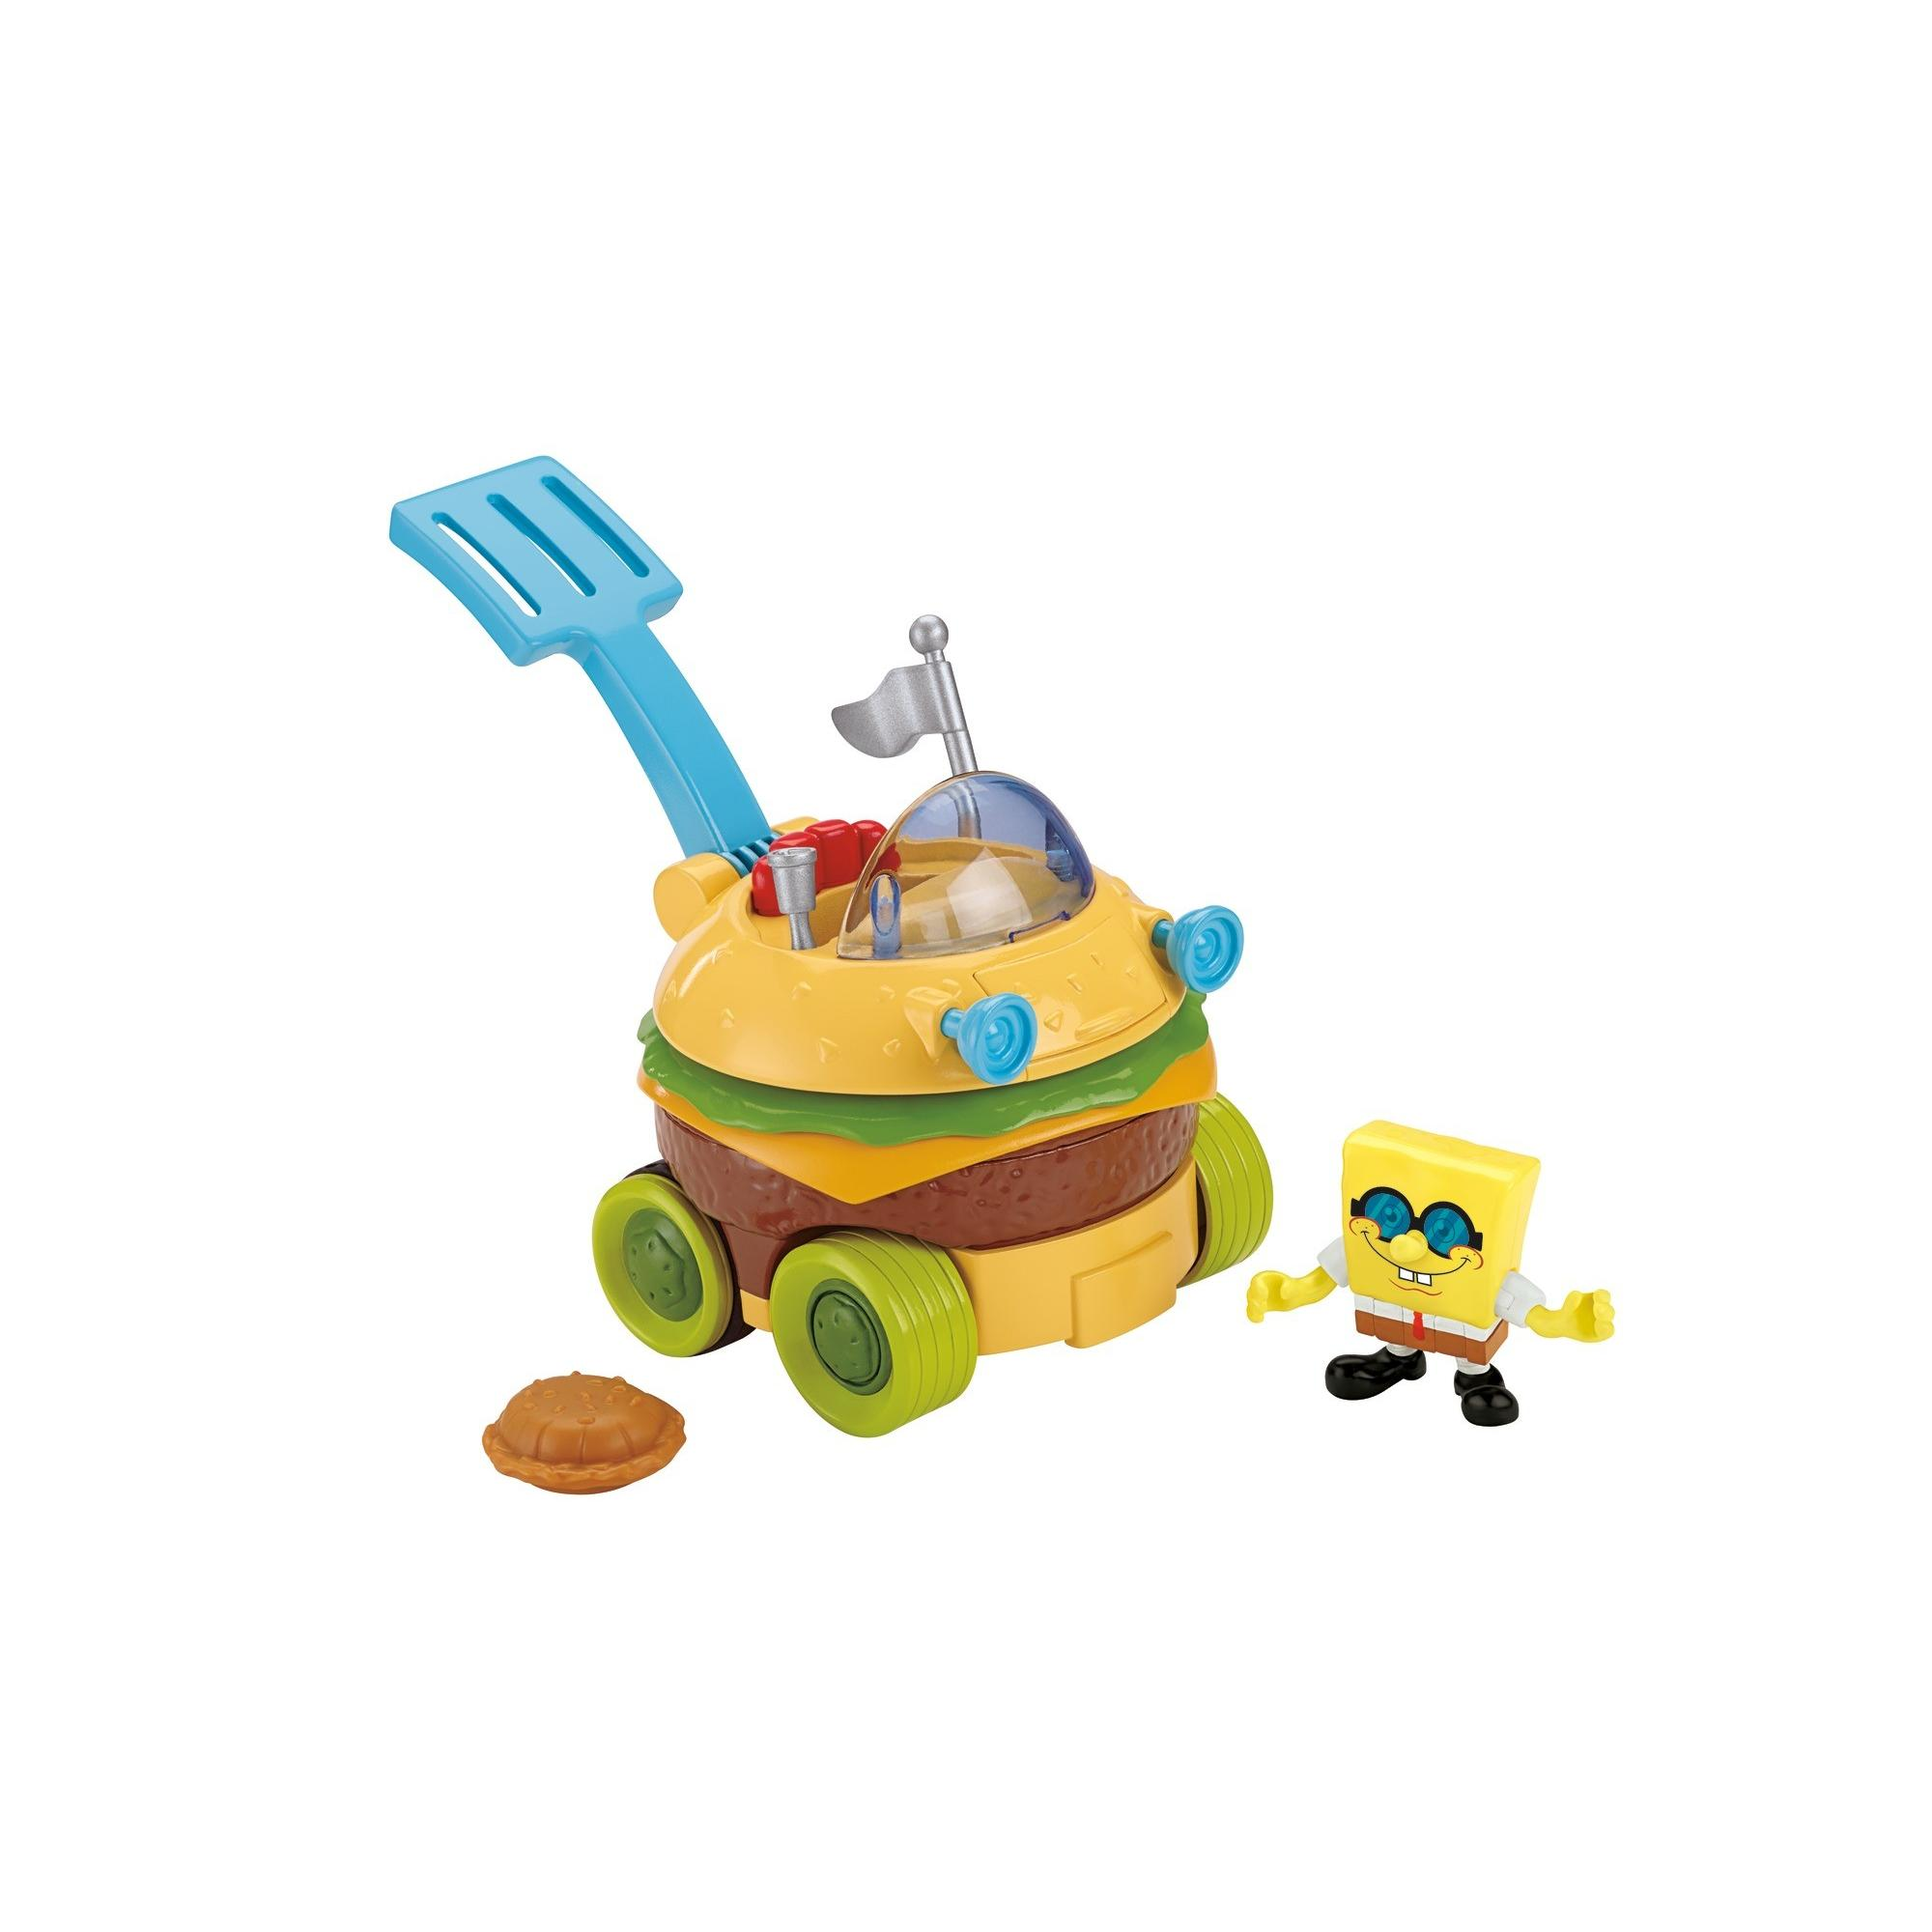 Imaginext SpongeBob SquarePants Krabby Patty Wagon - Walmart.com